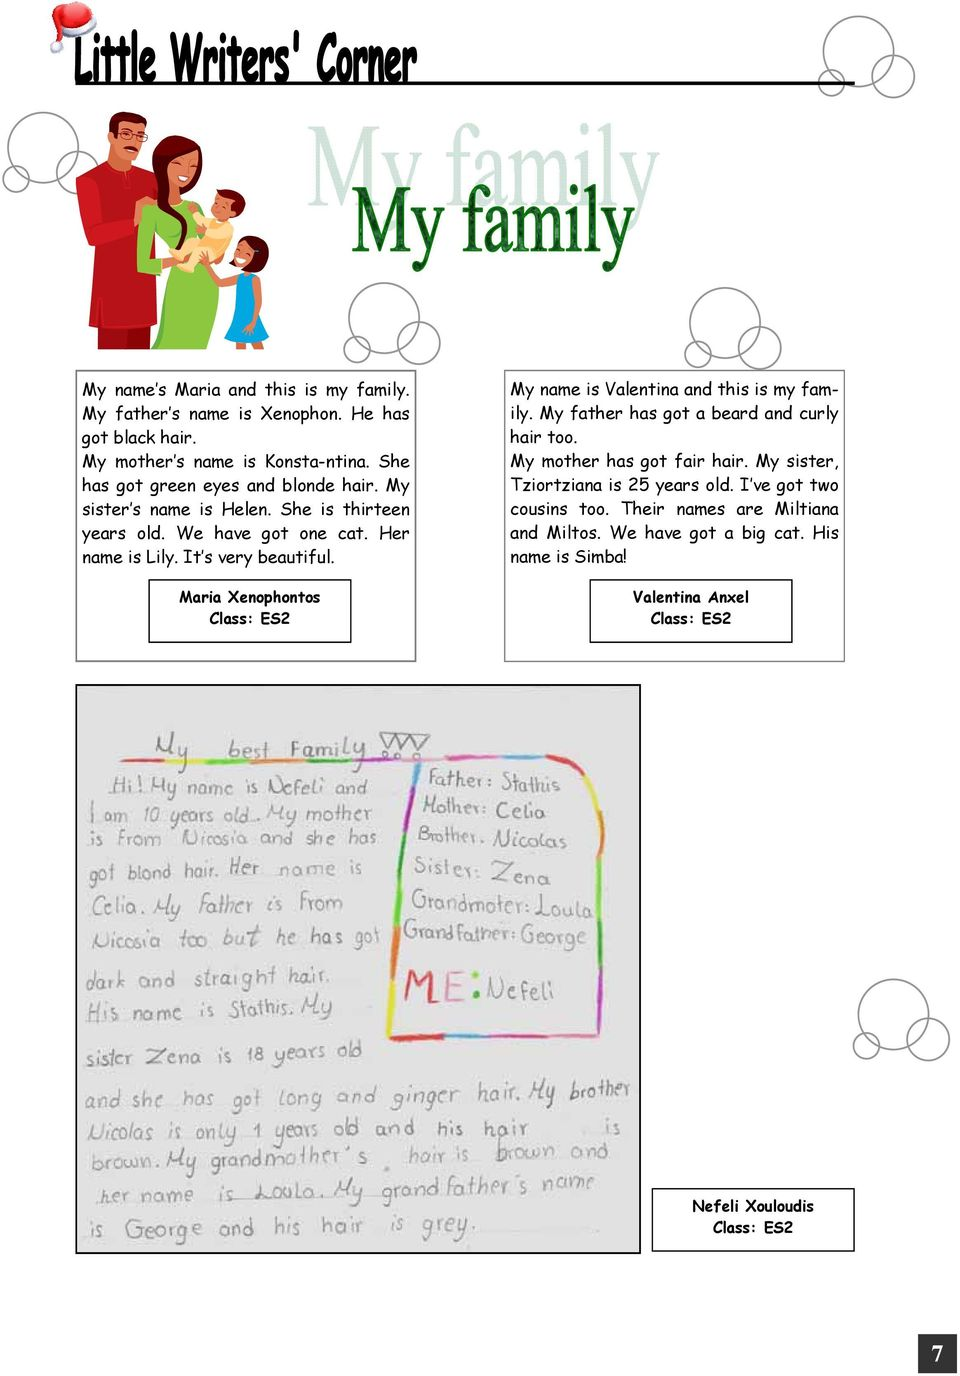 Maria Xenophontos Class: ES2 My name is Valentina and this is my family. My father has got a beard and curly hair too. My mother has got fair hair.